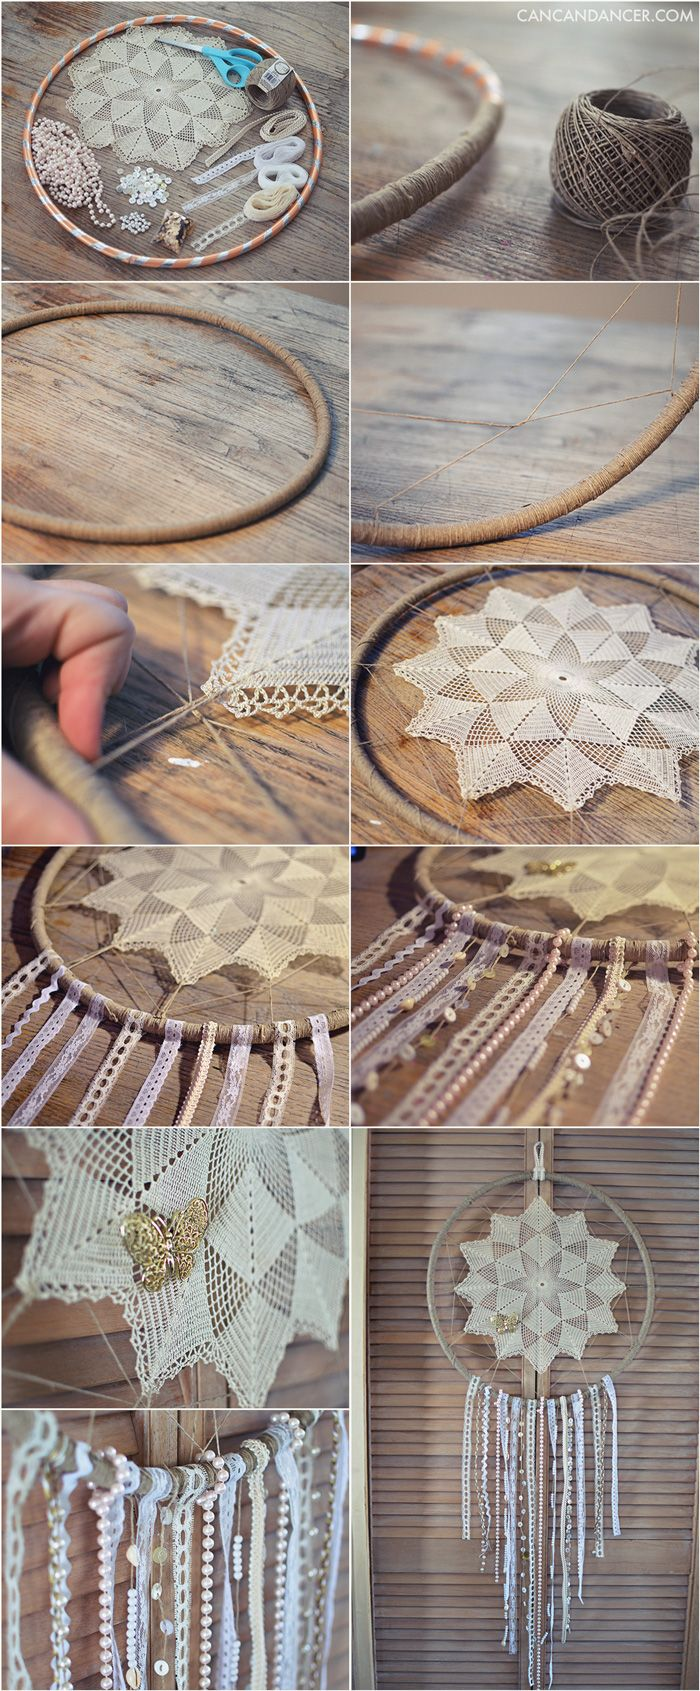 Instructions on how to make a dream catcher picture - Diy Instructions To Make An Oversized Dreamcatcher Dreamcatcher Diy